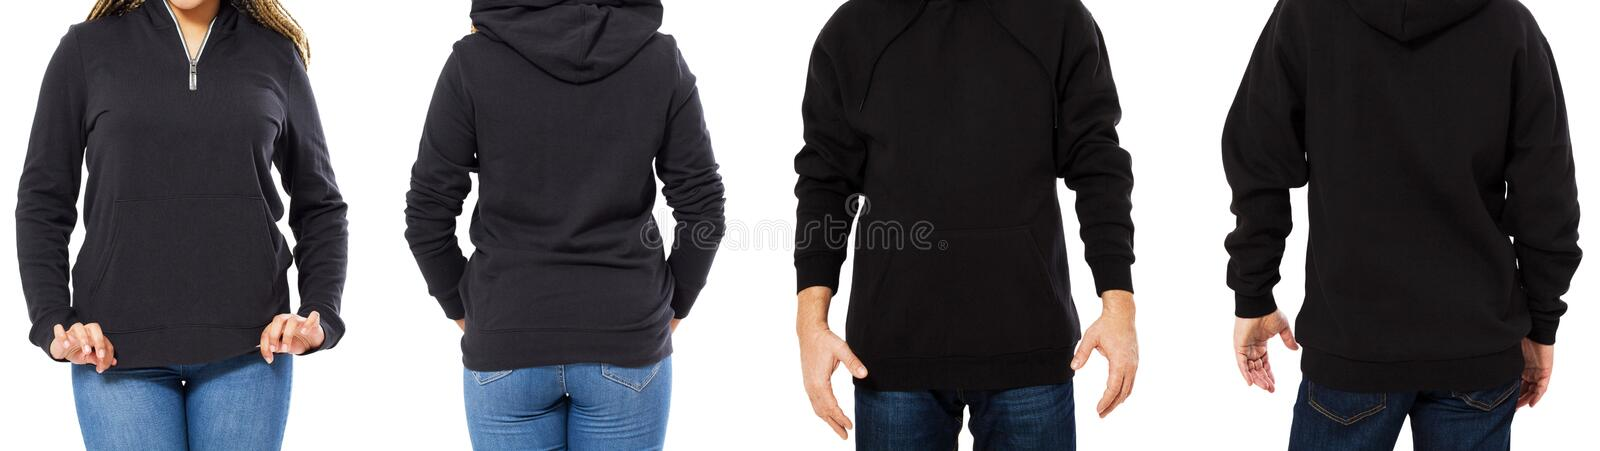 A girl in a black sweatshirt with a hood and a man in a sweatshirt front and back isolated, hoodie mockup empty royalty free stock photography